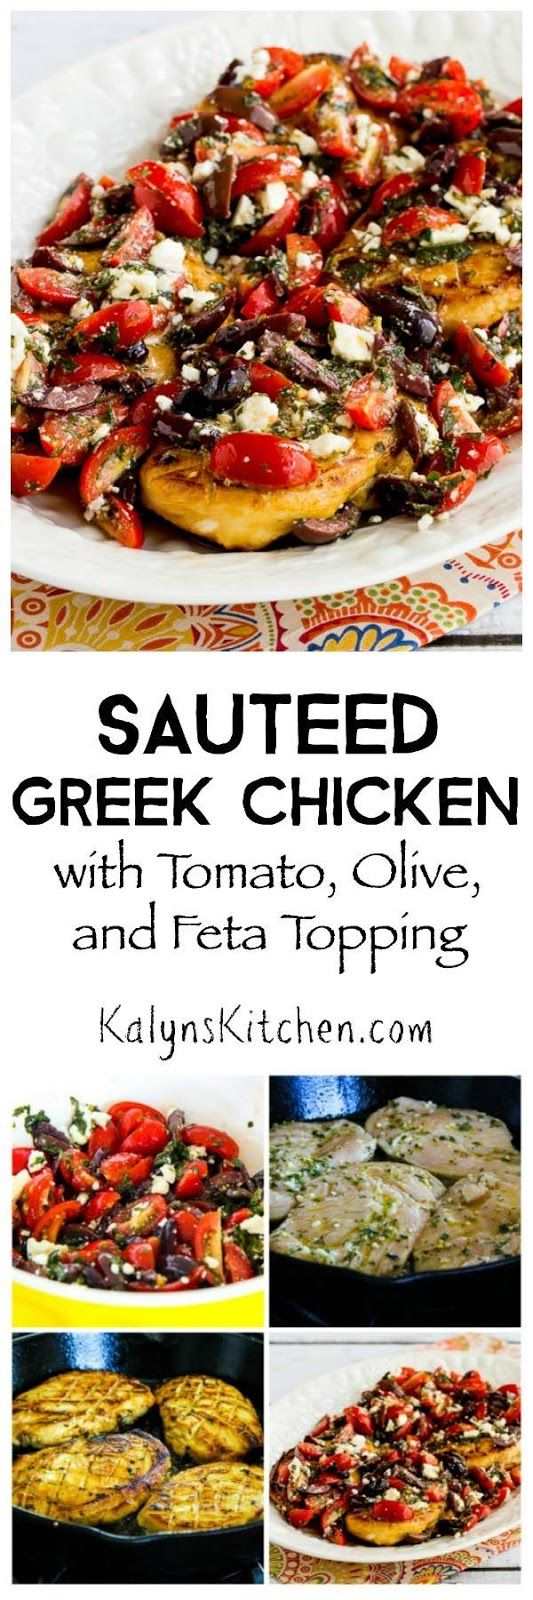 Sauteed Low-Carb Greek Chicken with Tomato, Olive, and Feta Topping is easy and delicious, and it's low-carb, gluten-free, and South Beach Diet Phase One. [found on KalynsKitchen.com]